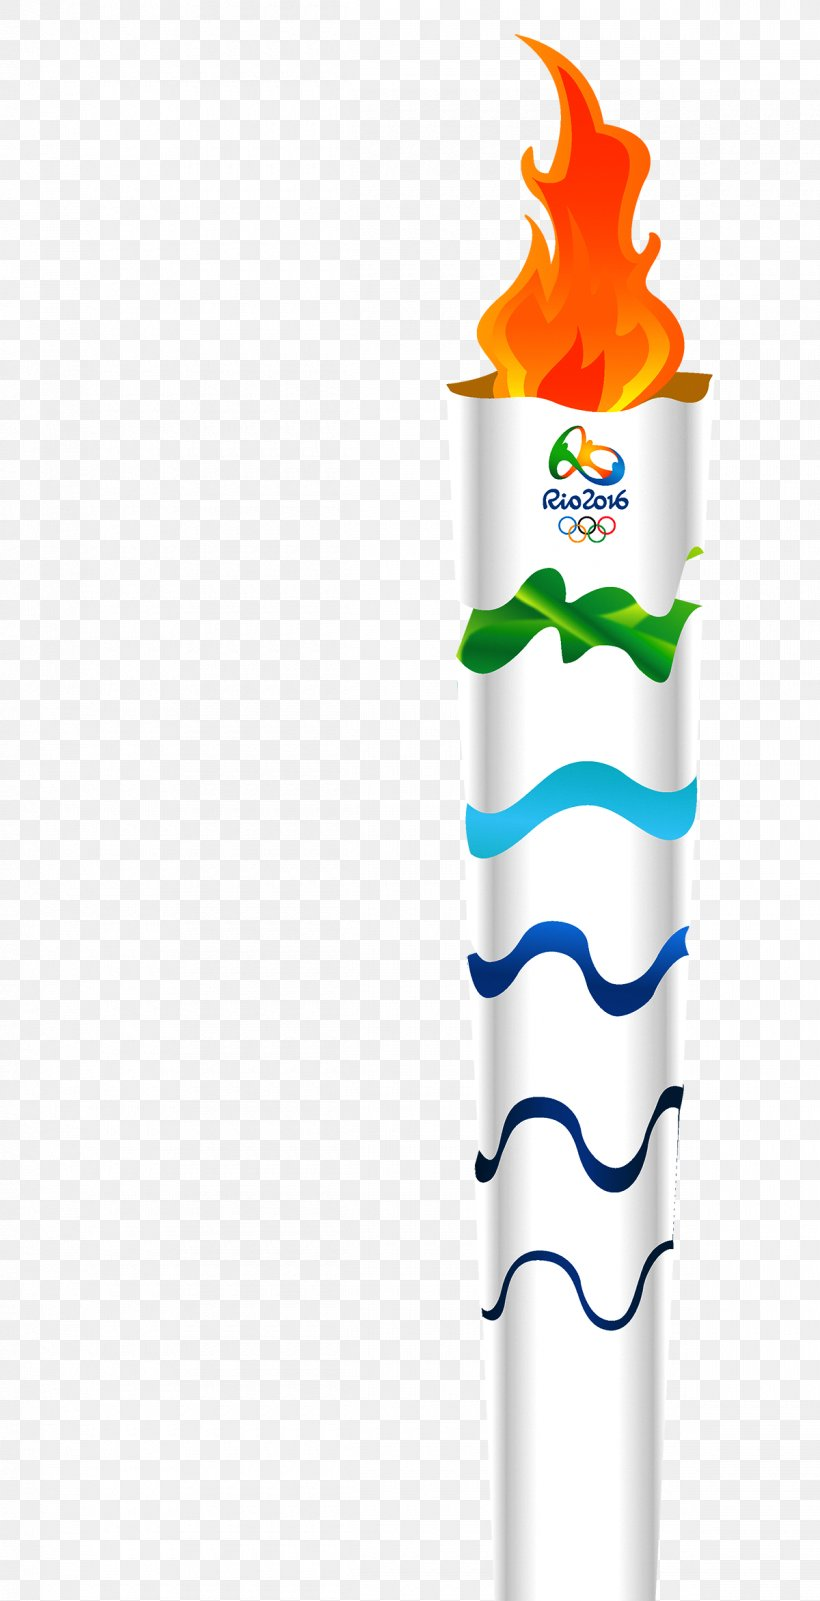 2016 Summer Olympics Torch Relay The London 2012 Summer Olympics Rio De Janeiro 2016 Summer Paralympics, PNG, 1200x2343px, 2016 Summer Paralympics, London 2012 Summer Olympics, Infographic, Nike, Olympic Flame Download Free